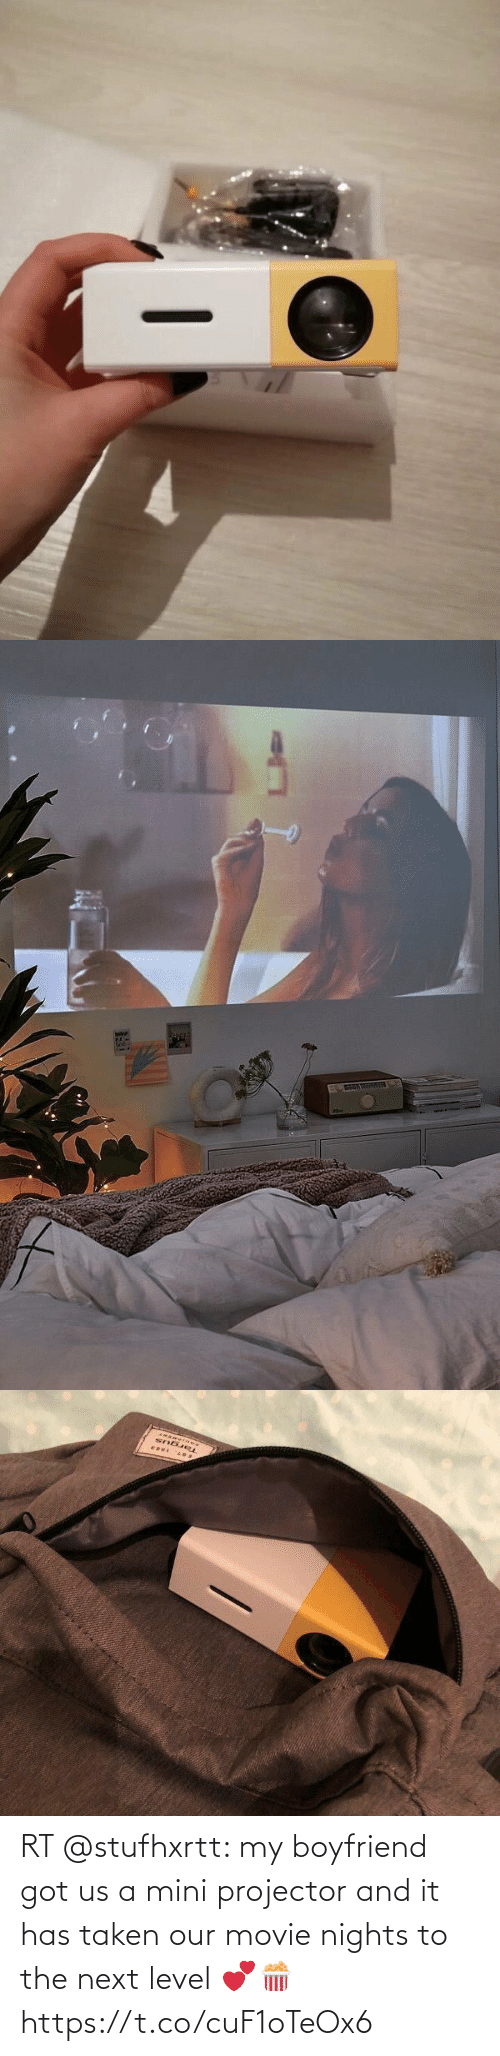 Movie: RT @stufhxrtt: my boyfriend got us a mini projector and it has taken our movie nights to the next level 💕🍿 https://t.co/cuF1oTeOx6